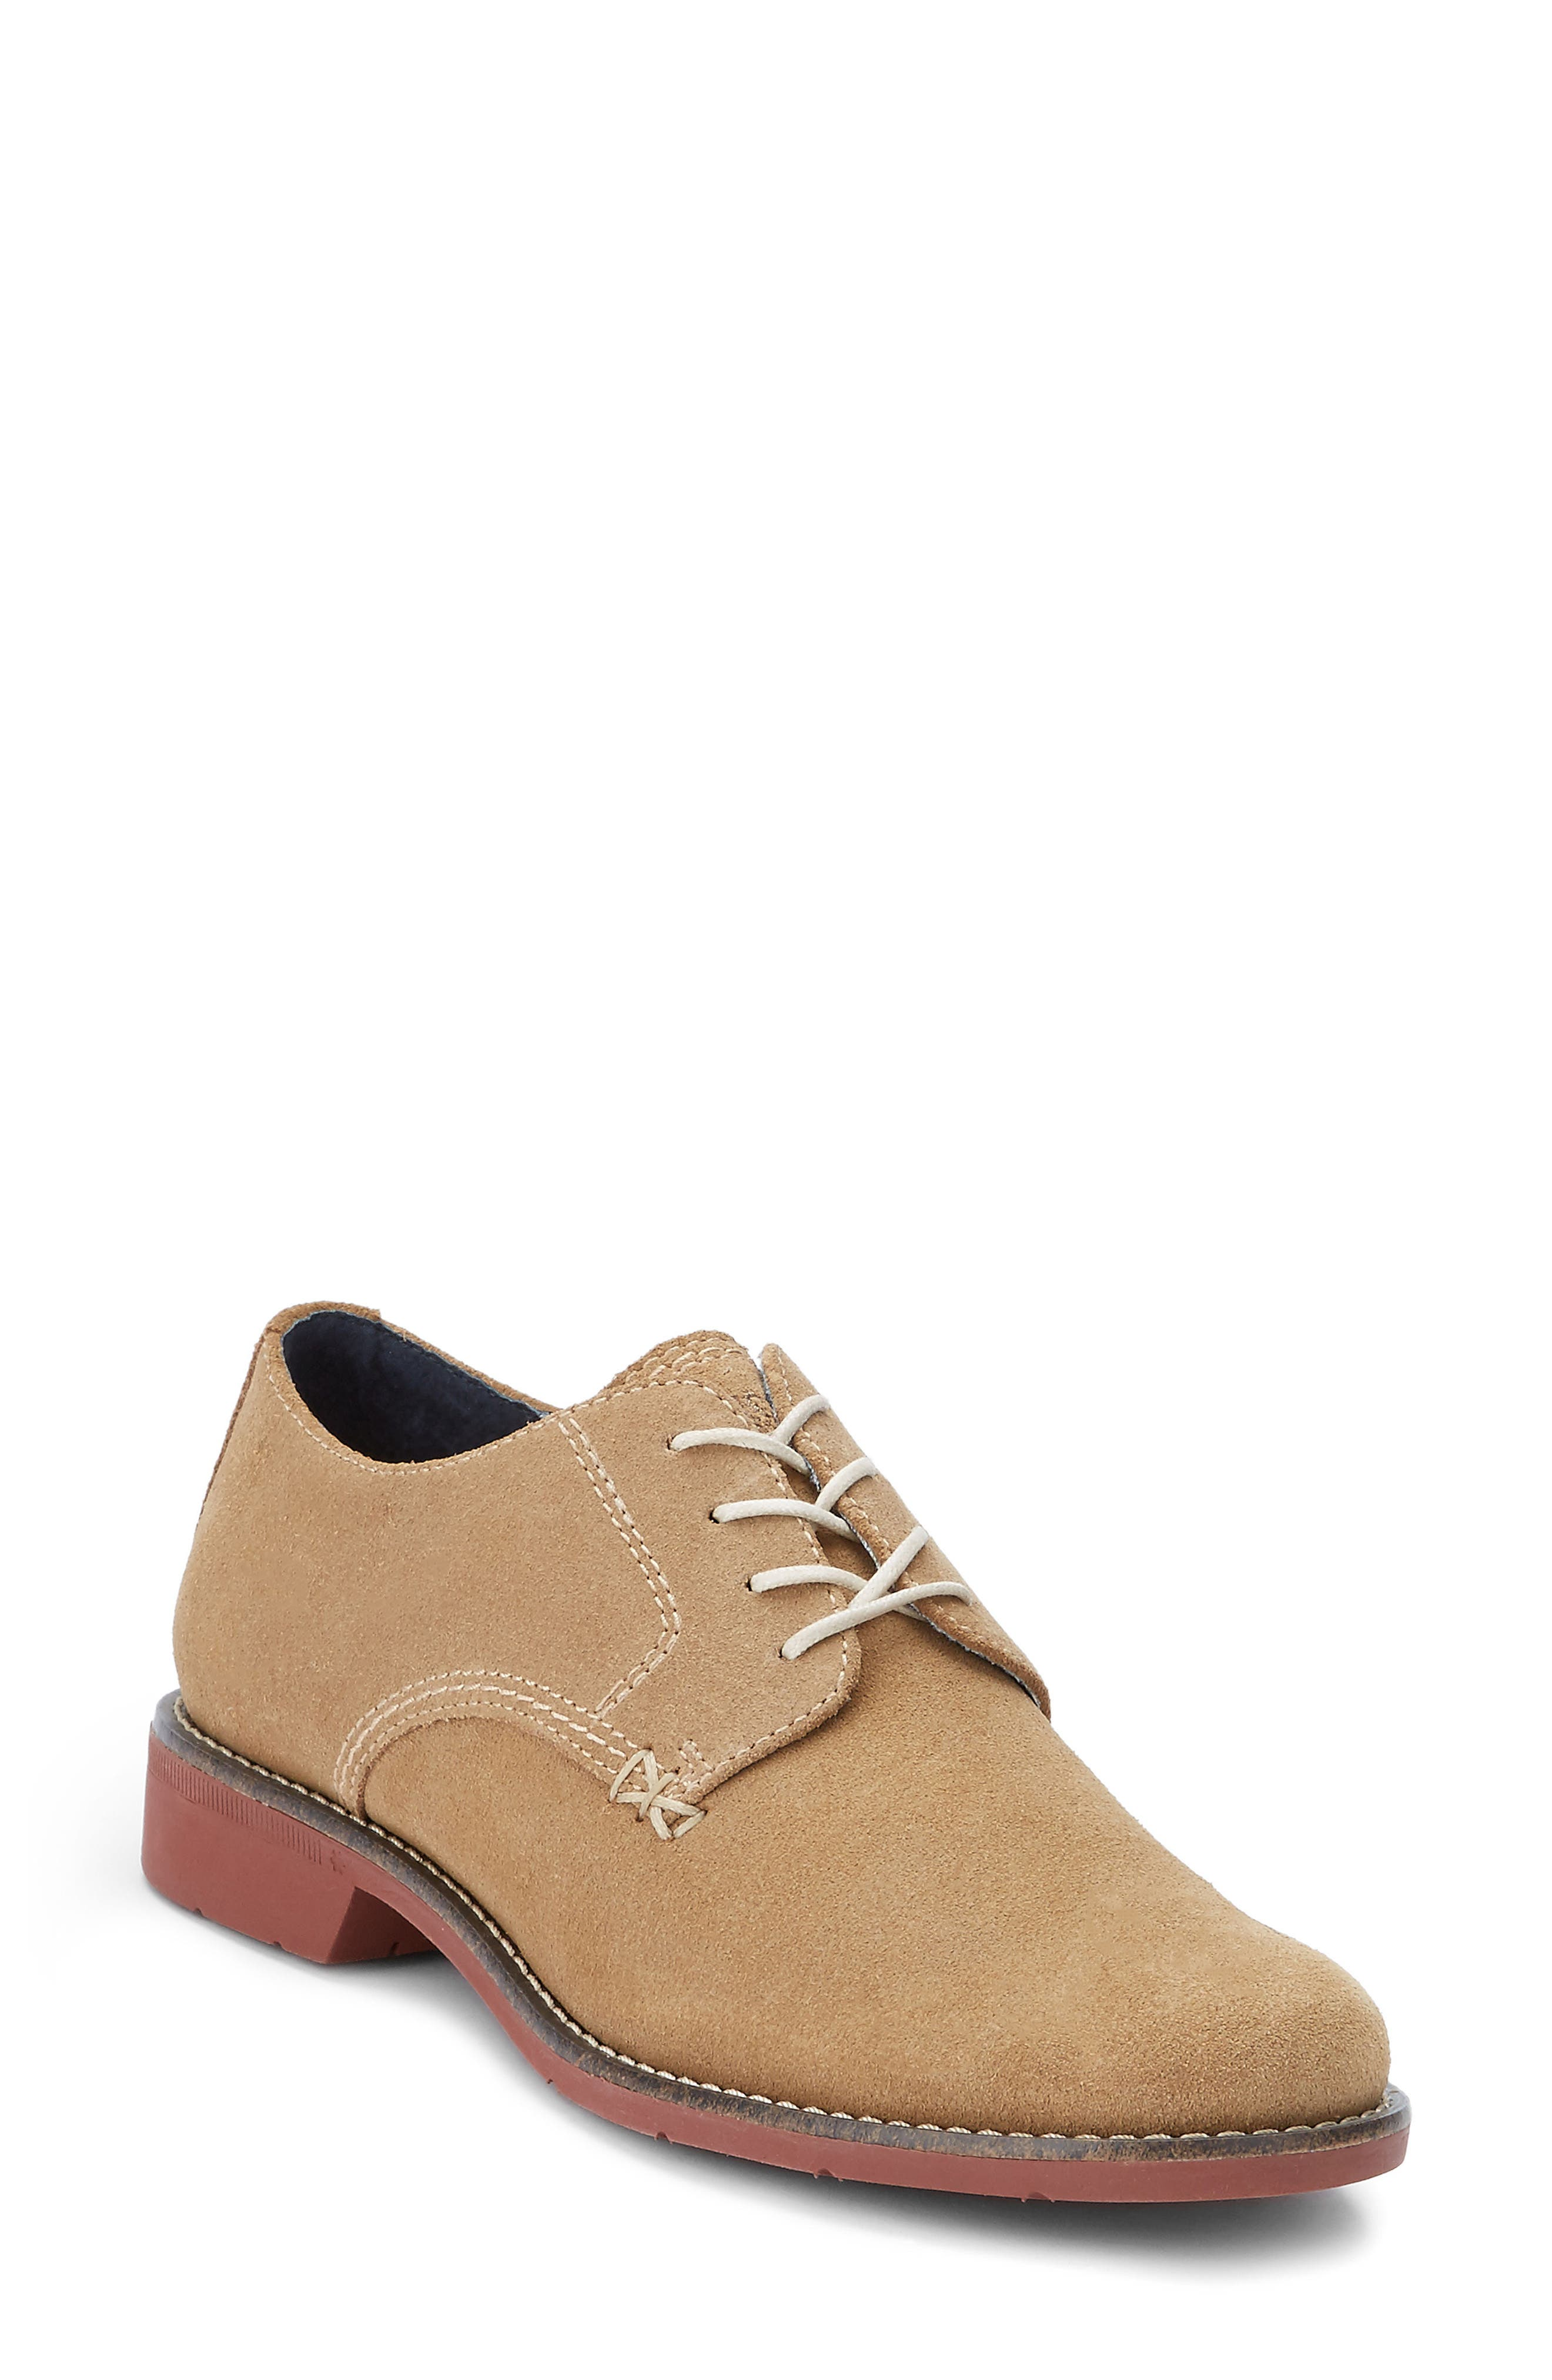 G.H. BASS & CO. G.H. Bass and Co. Denice Lace Up Oxford